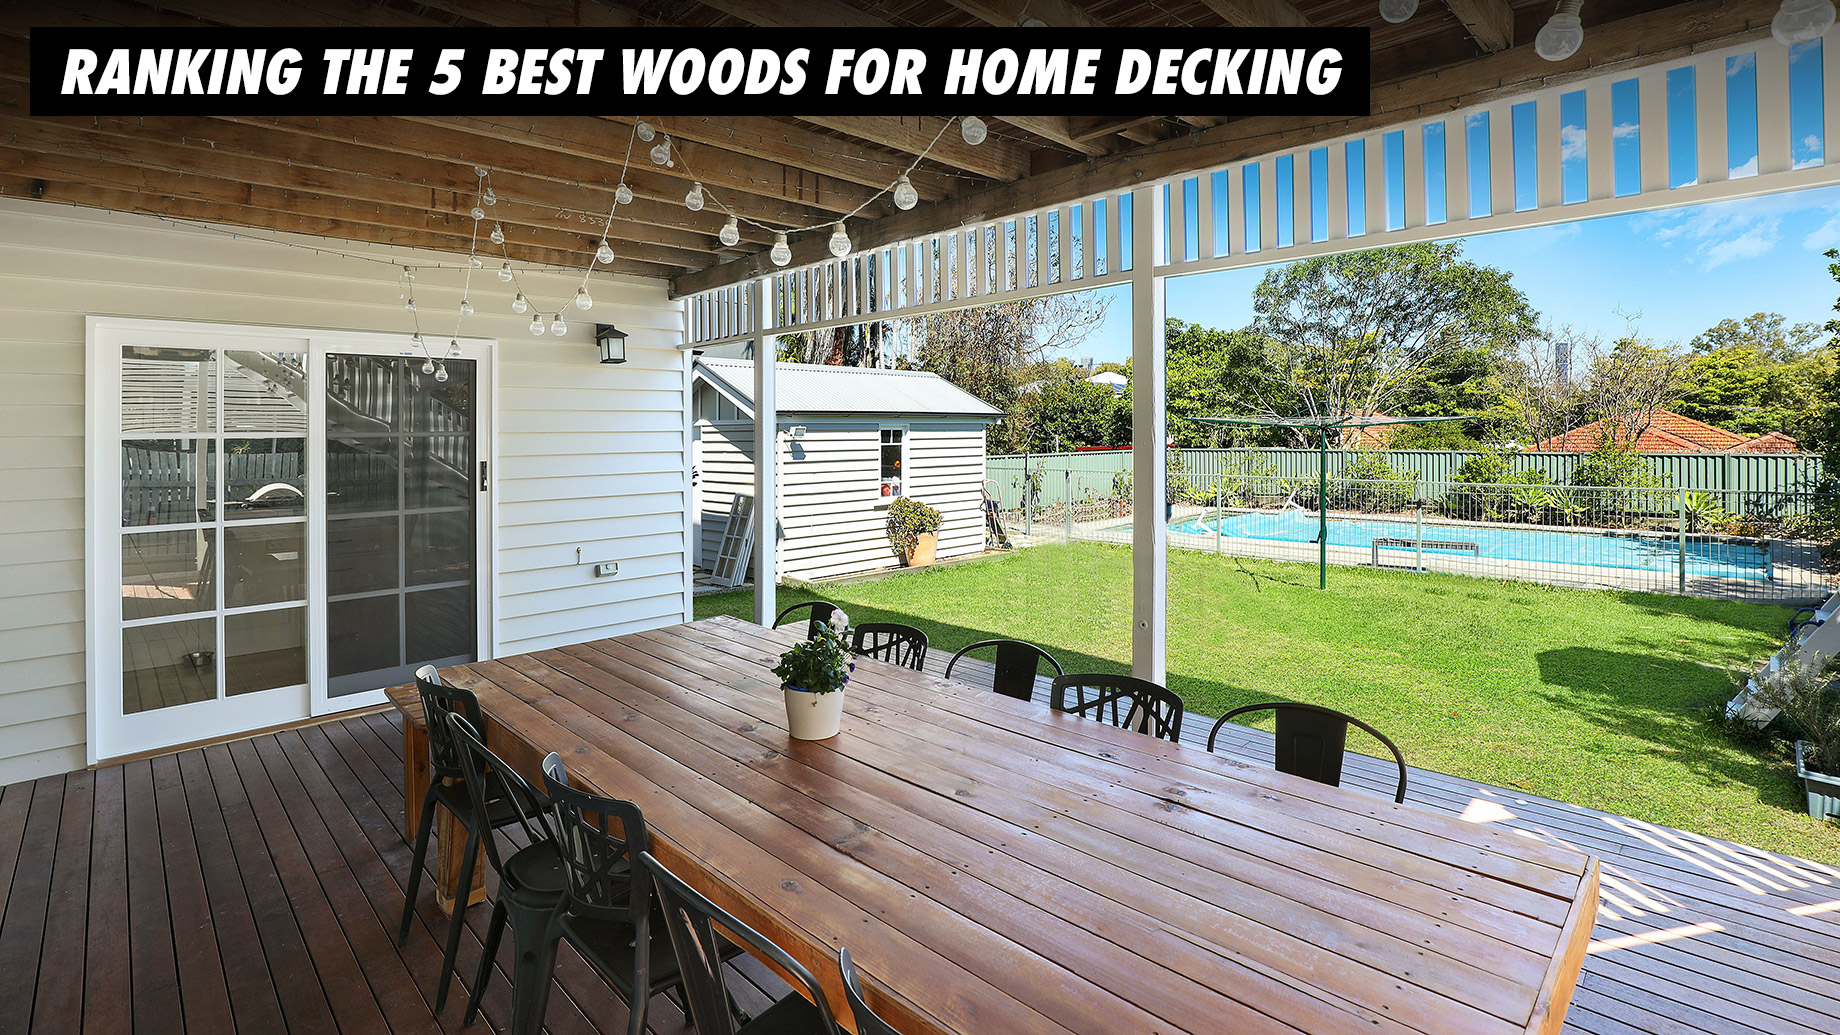 Ranking The 5 Best Woods for Home Decking